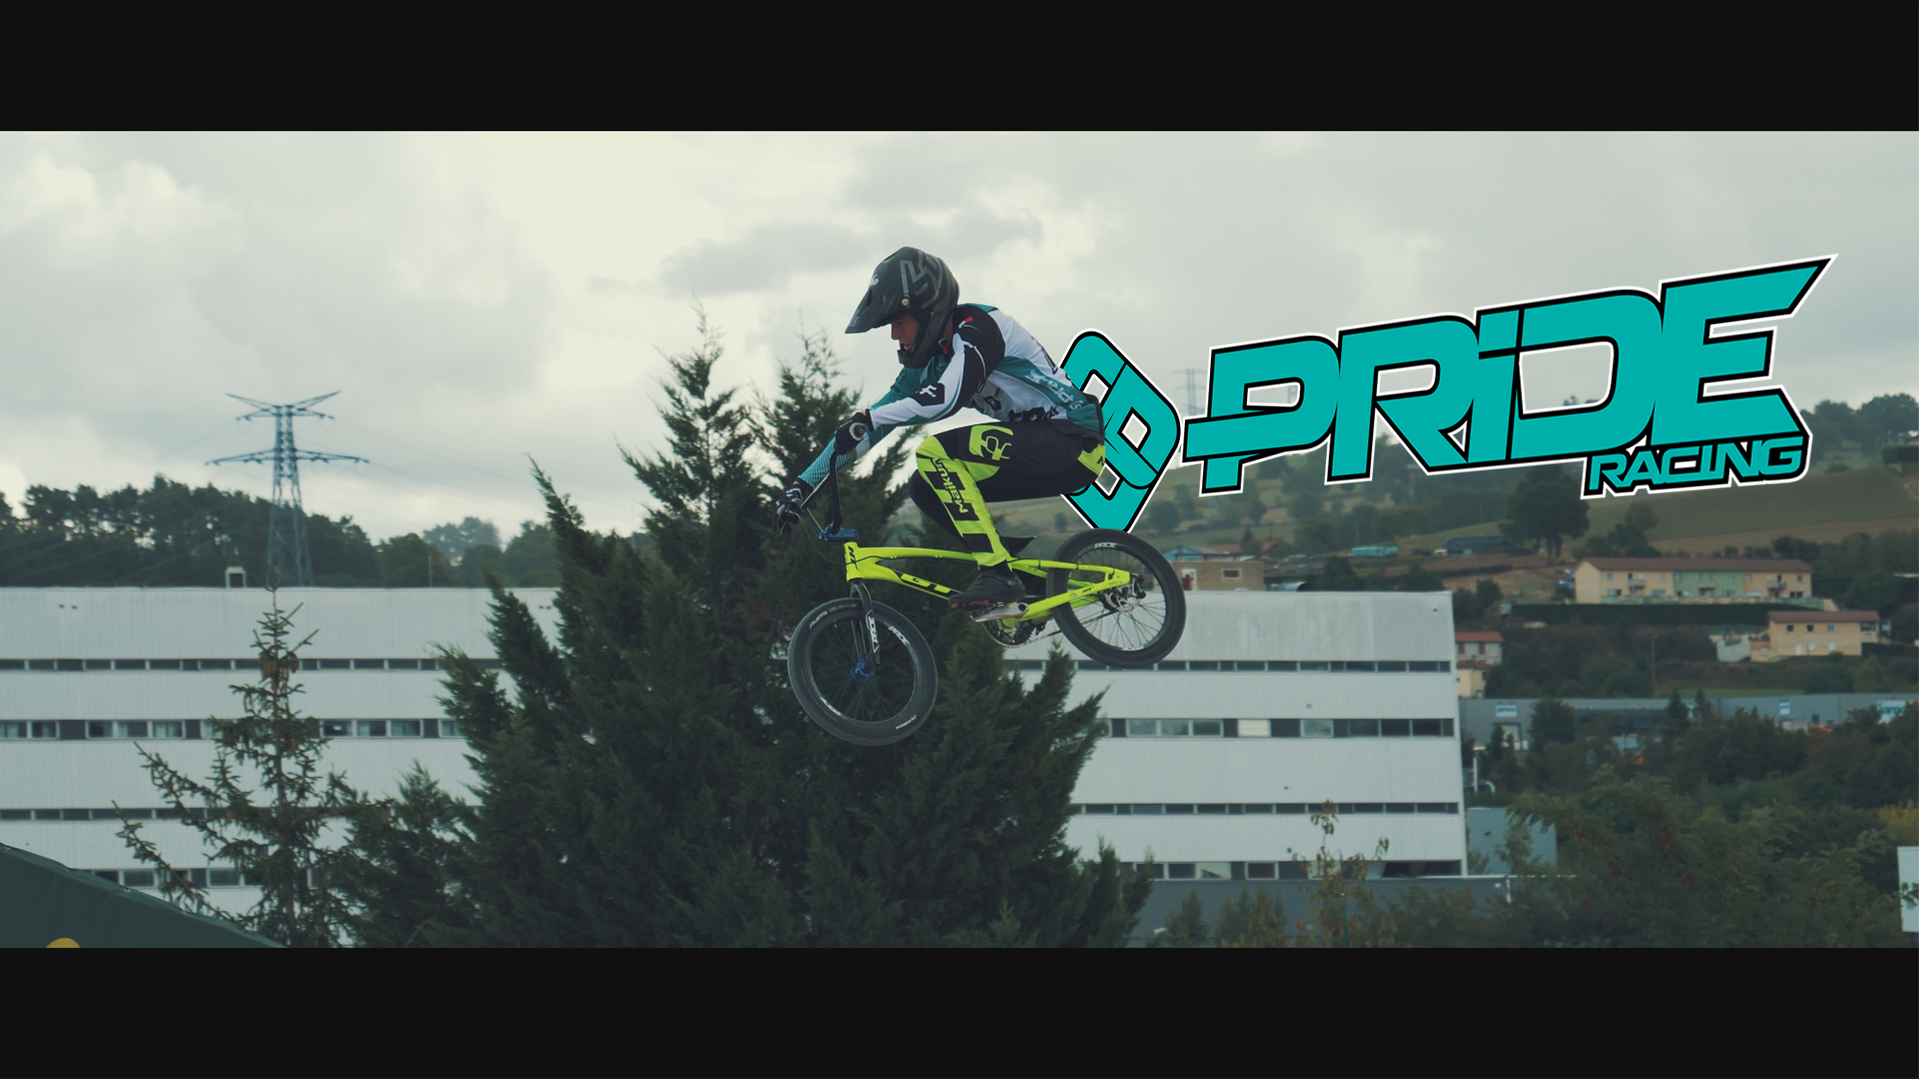 Vidéo PRIDE RACING « Made to be raced »